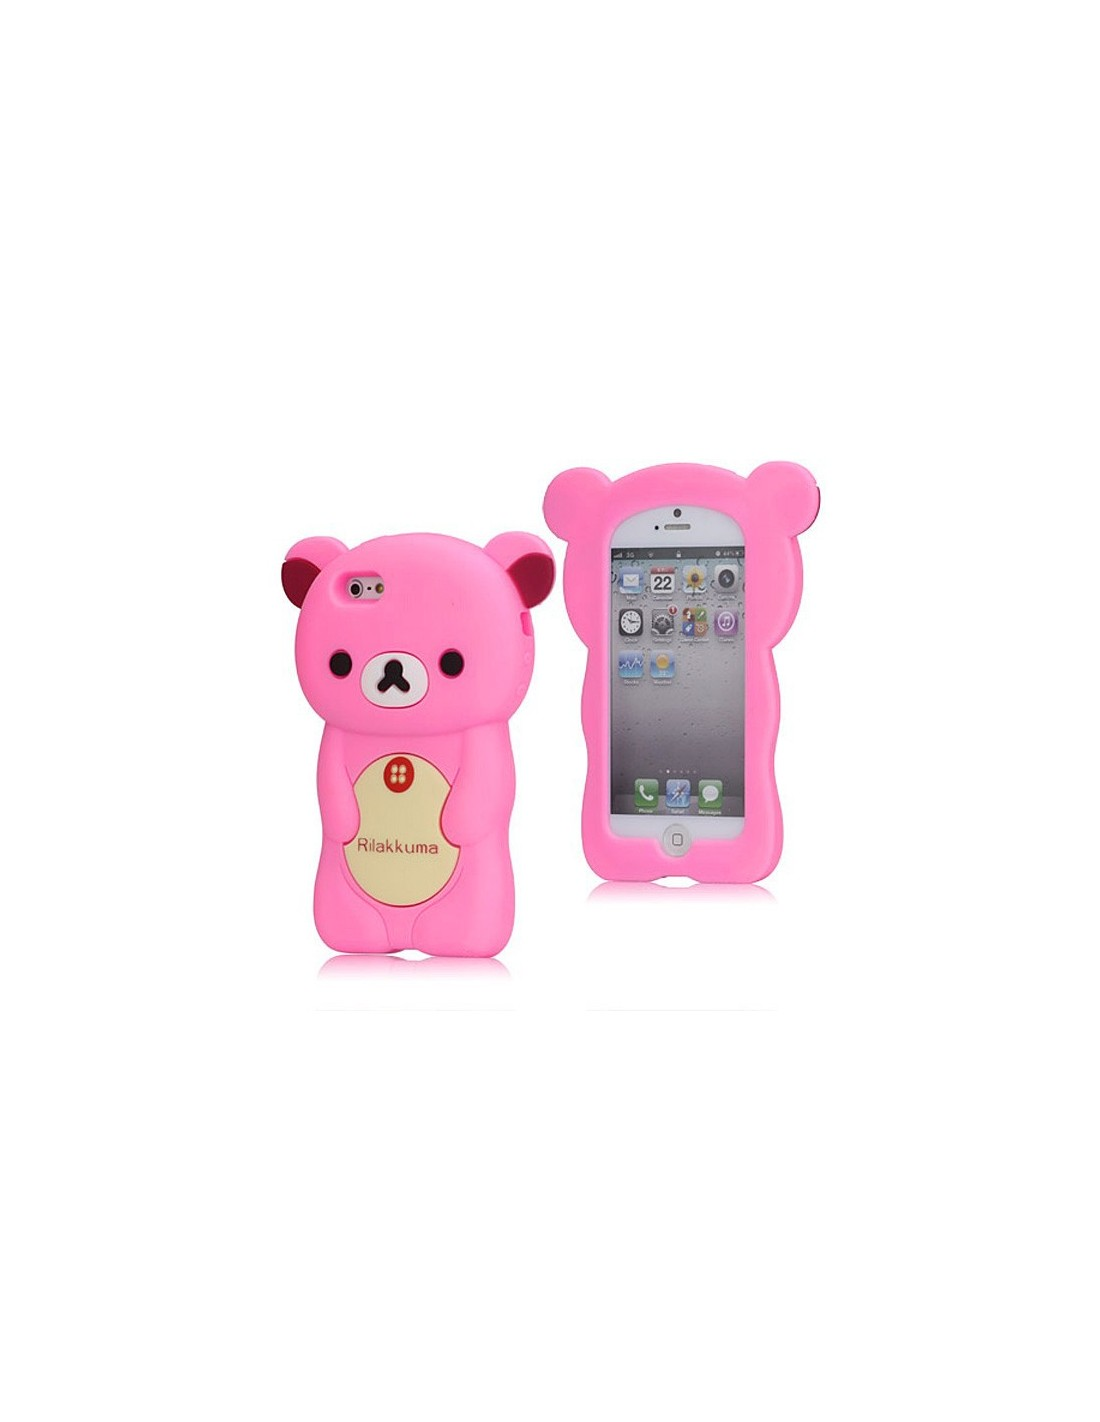 Coque rilakkuma ourson pour iphone 4 4s for Cuisine 3d pour iphone